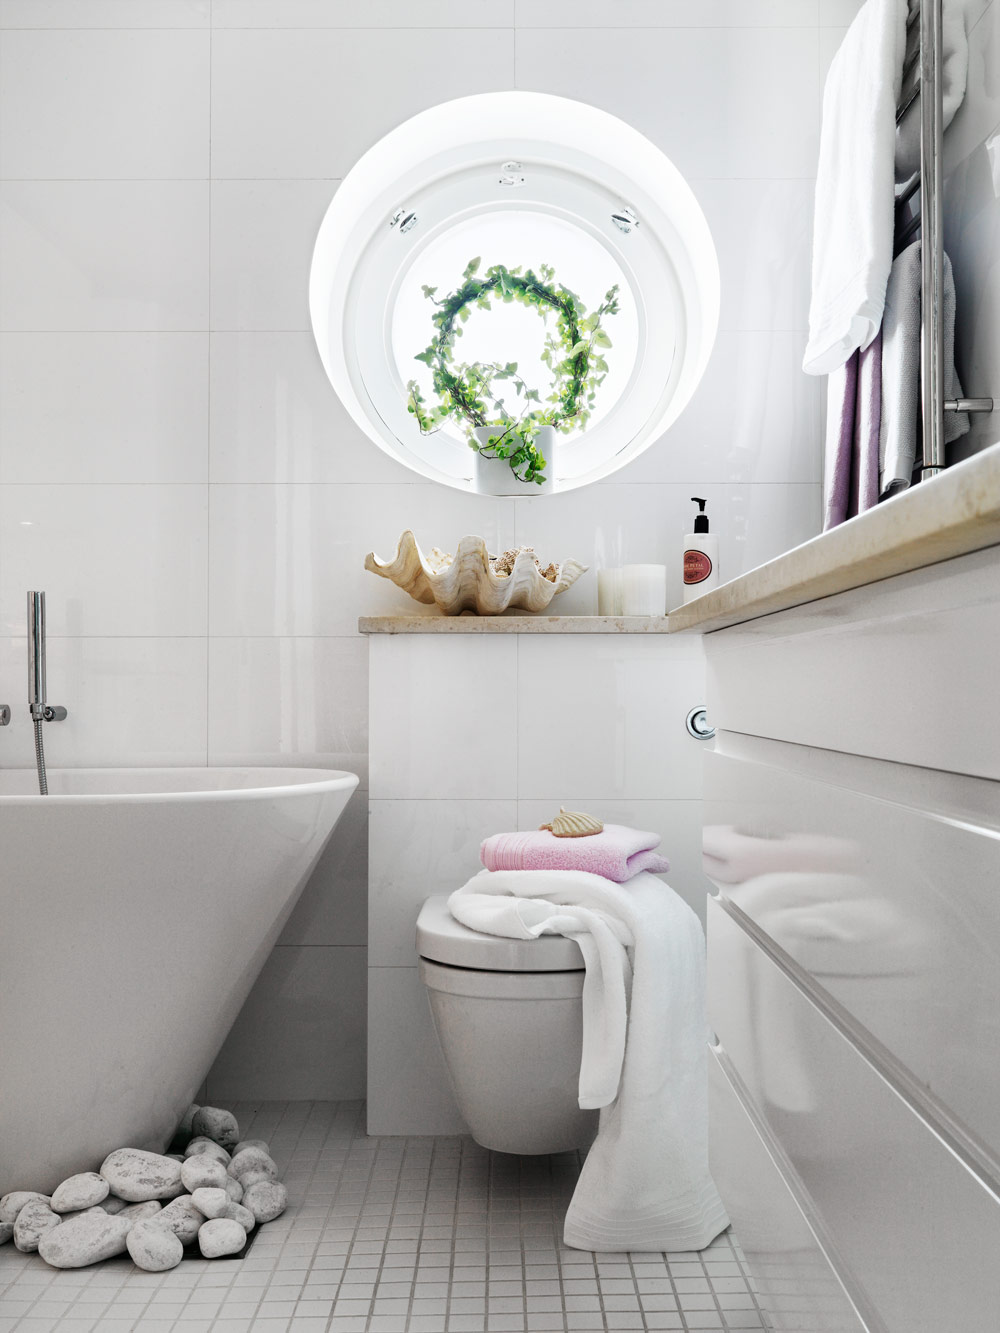 Stylish small bathroom with an unusual decor digsdigs for Micro bathroom ideas